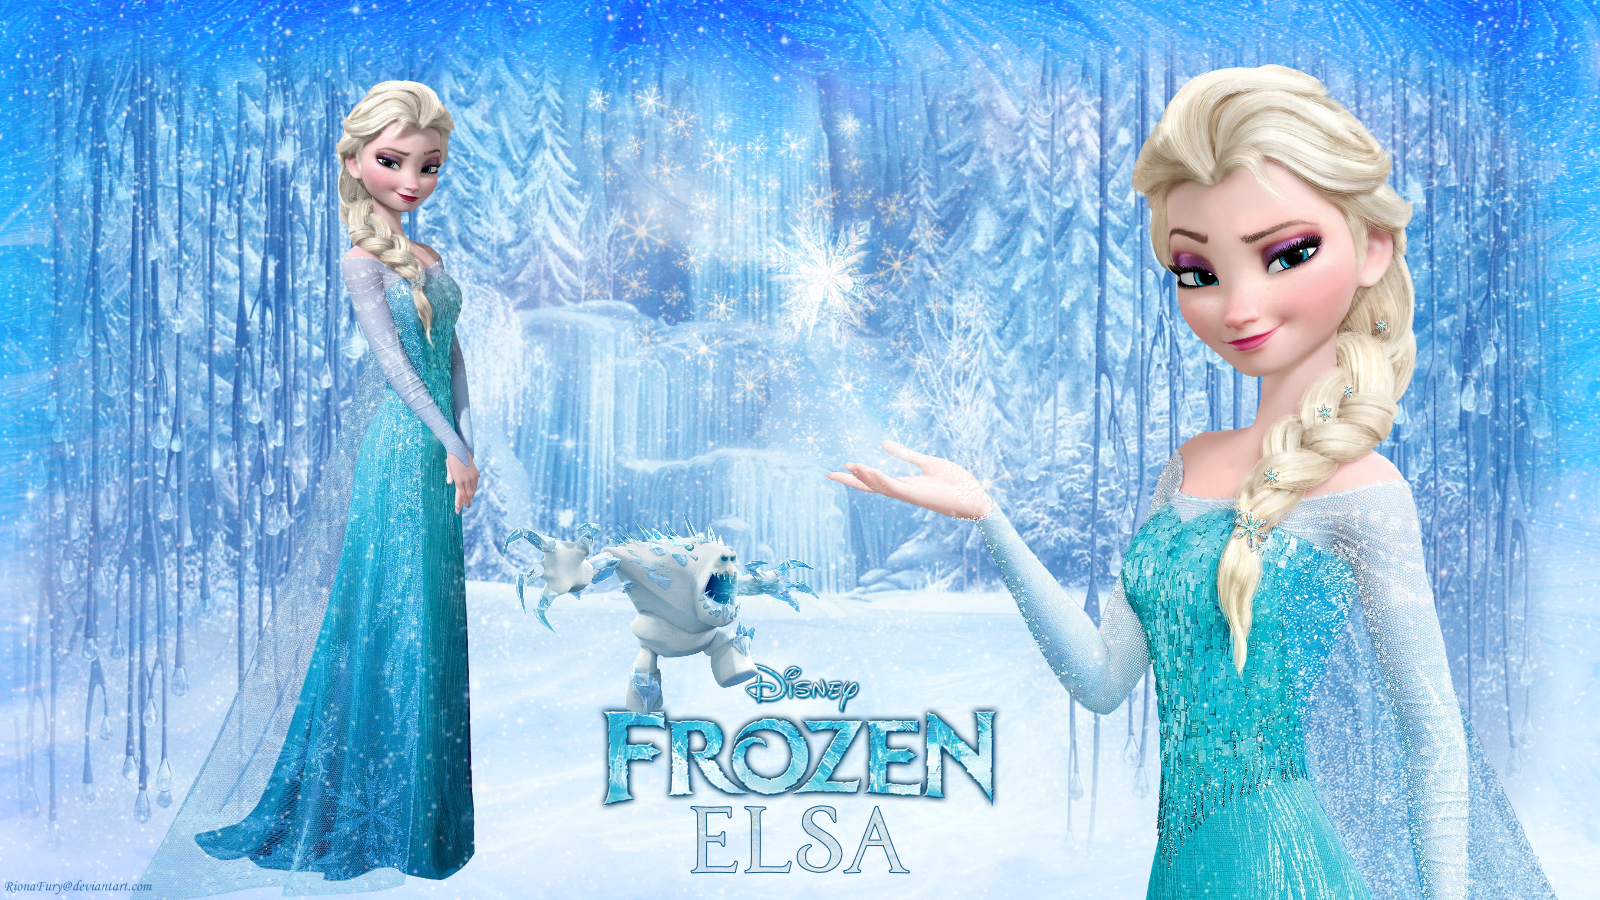 Frozen Elsa   Principesse Disney wallpaper 37731327   fanpop 1600x900